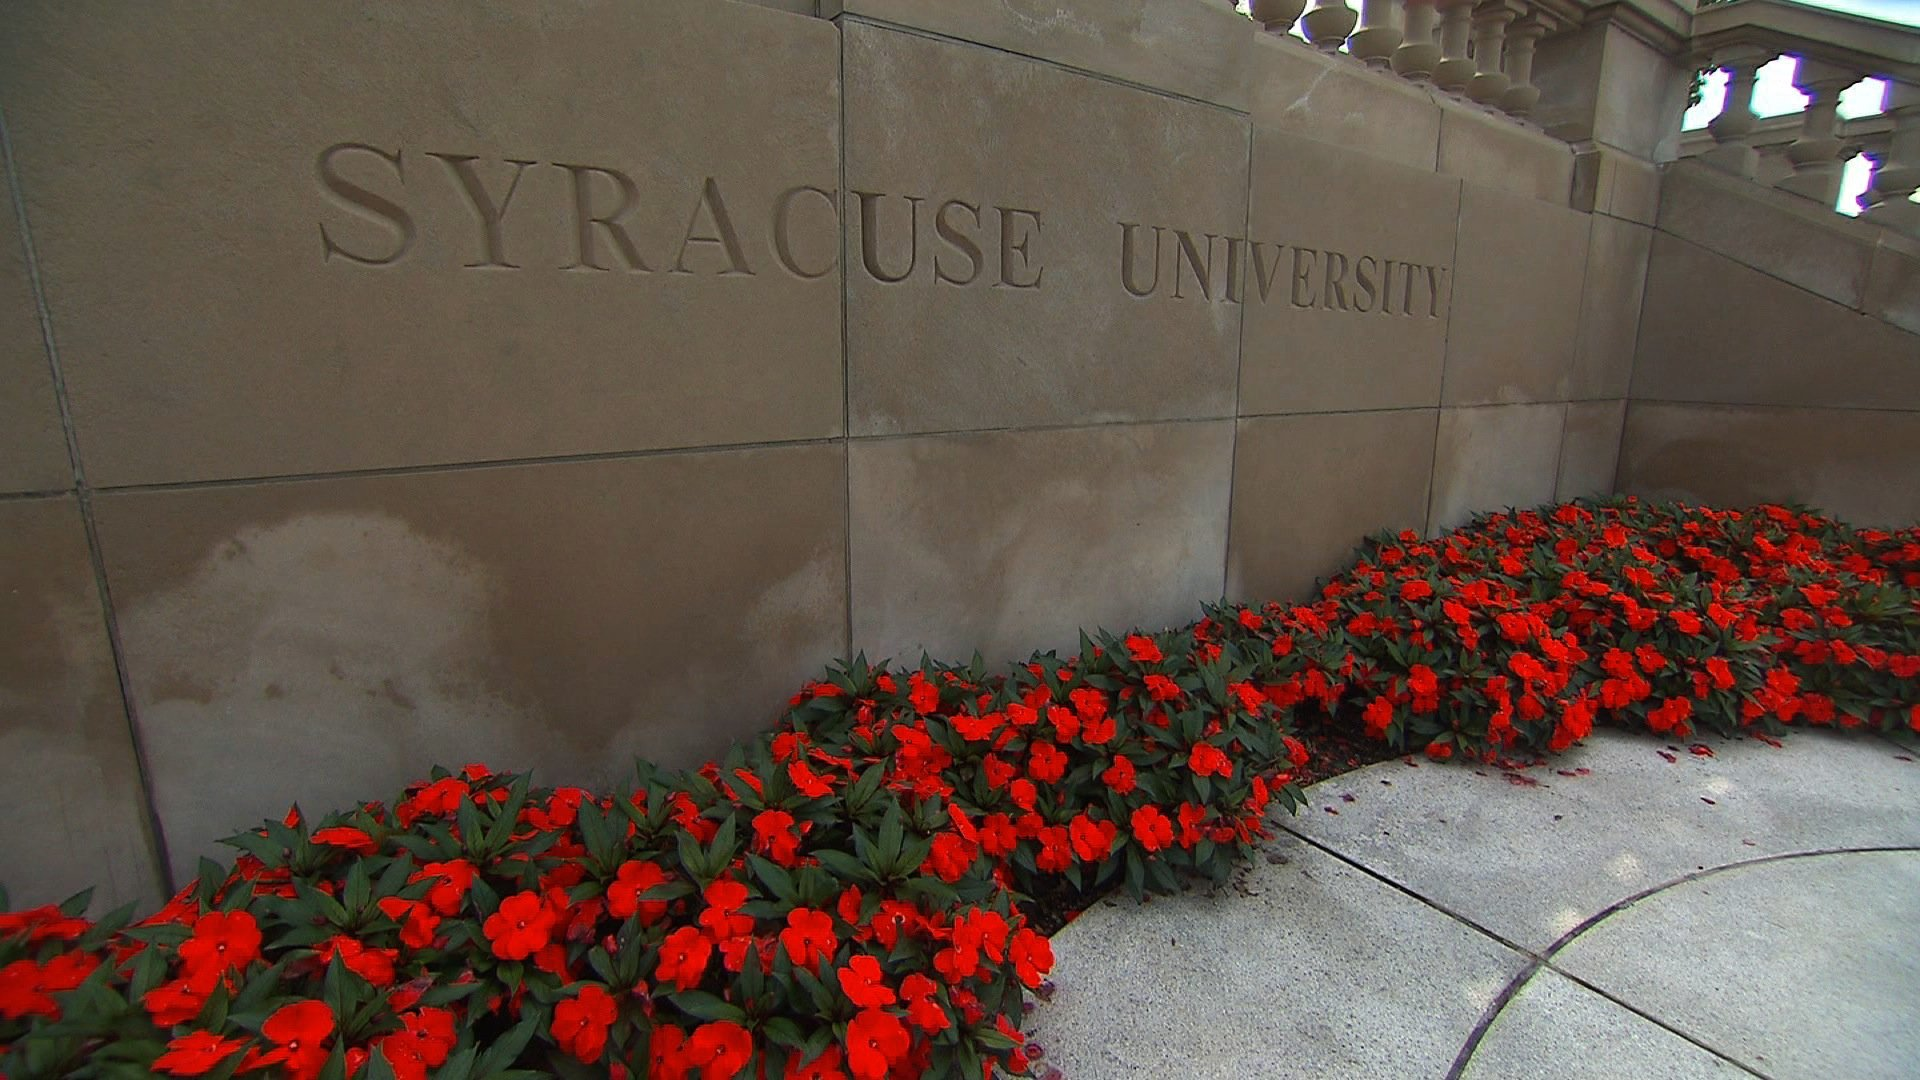 Syracuse University in New York is shown in a photo shot on August 5, 2014. (Credit: CNN)